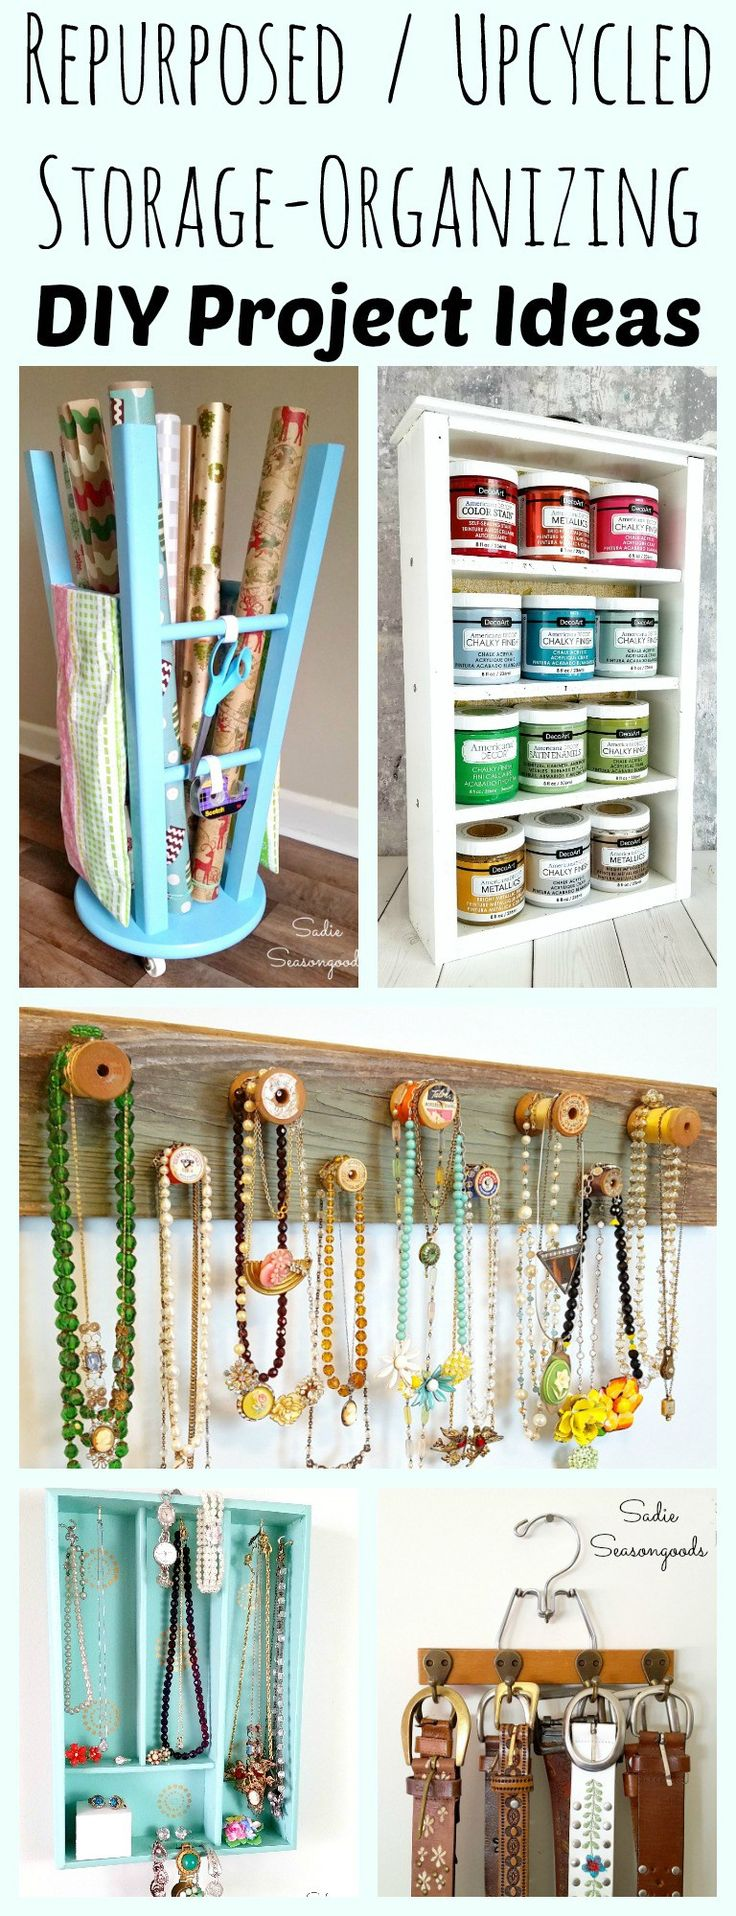 New year, new organization in your home! And these DIY repurposed and upcycled ideas will surely inspire you to reuse everyday items as either additional storage in your house or ways to organize your belongings in meaningful ways! From Craft Room Organization, to jewelry storage, to everything in between- Sadie Seasongoods has you covered! www.sadieseasongoods.com